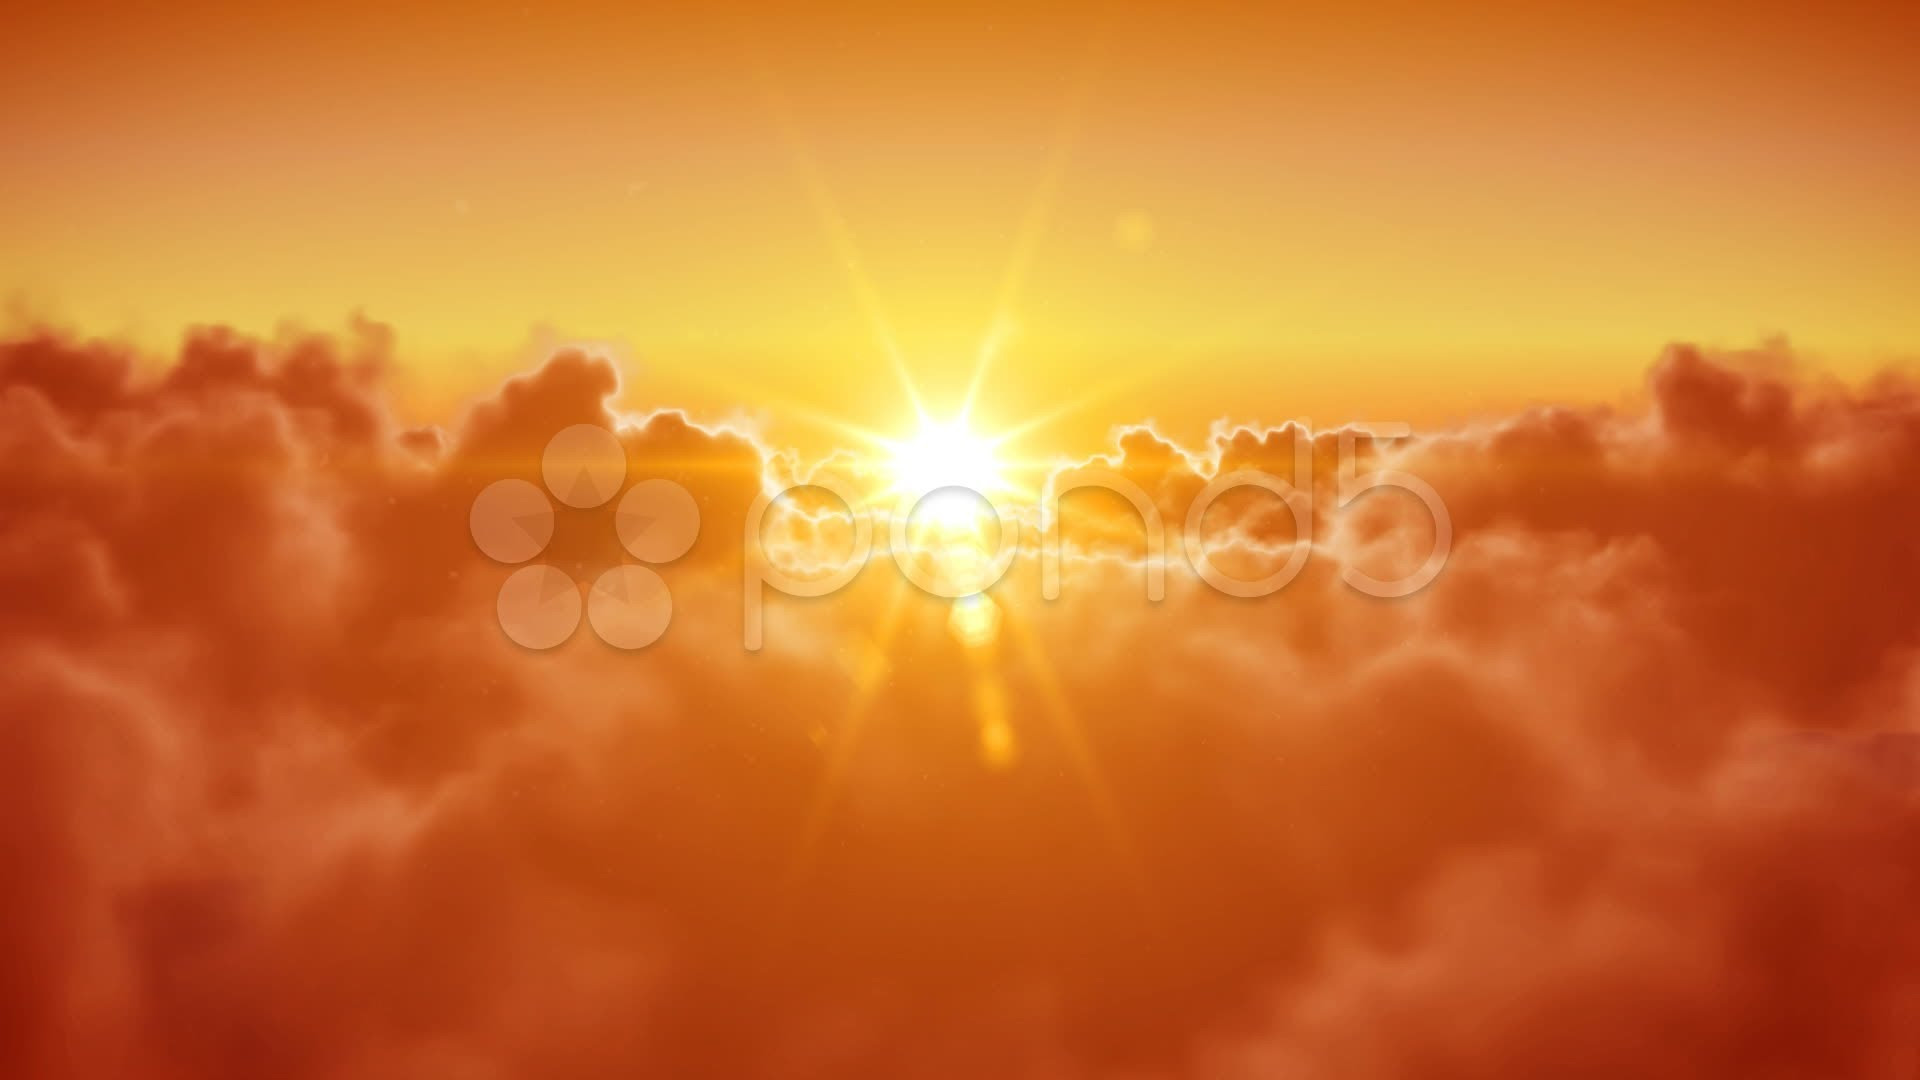 Free Animated Hd Sun Download Free Clip Art Free Clip Art On